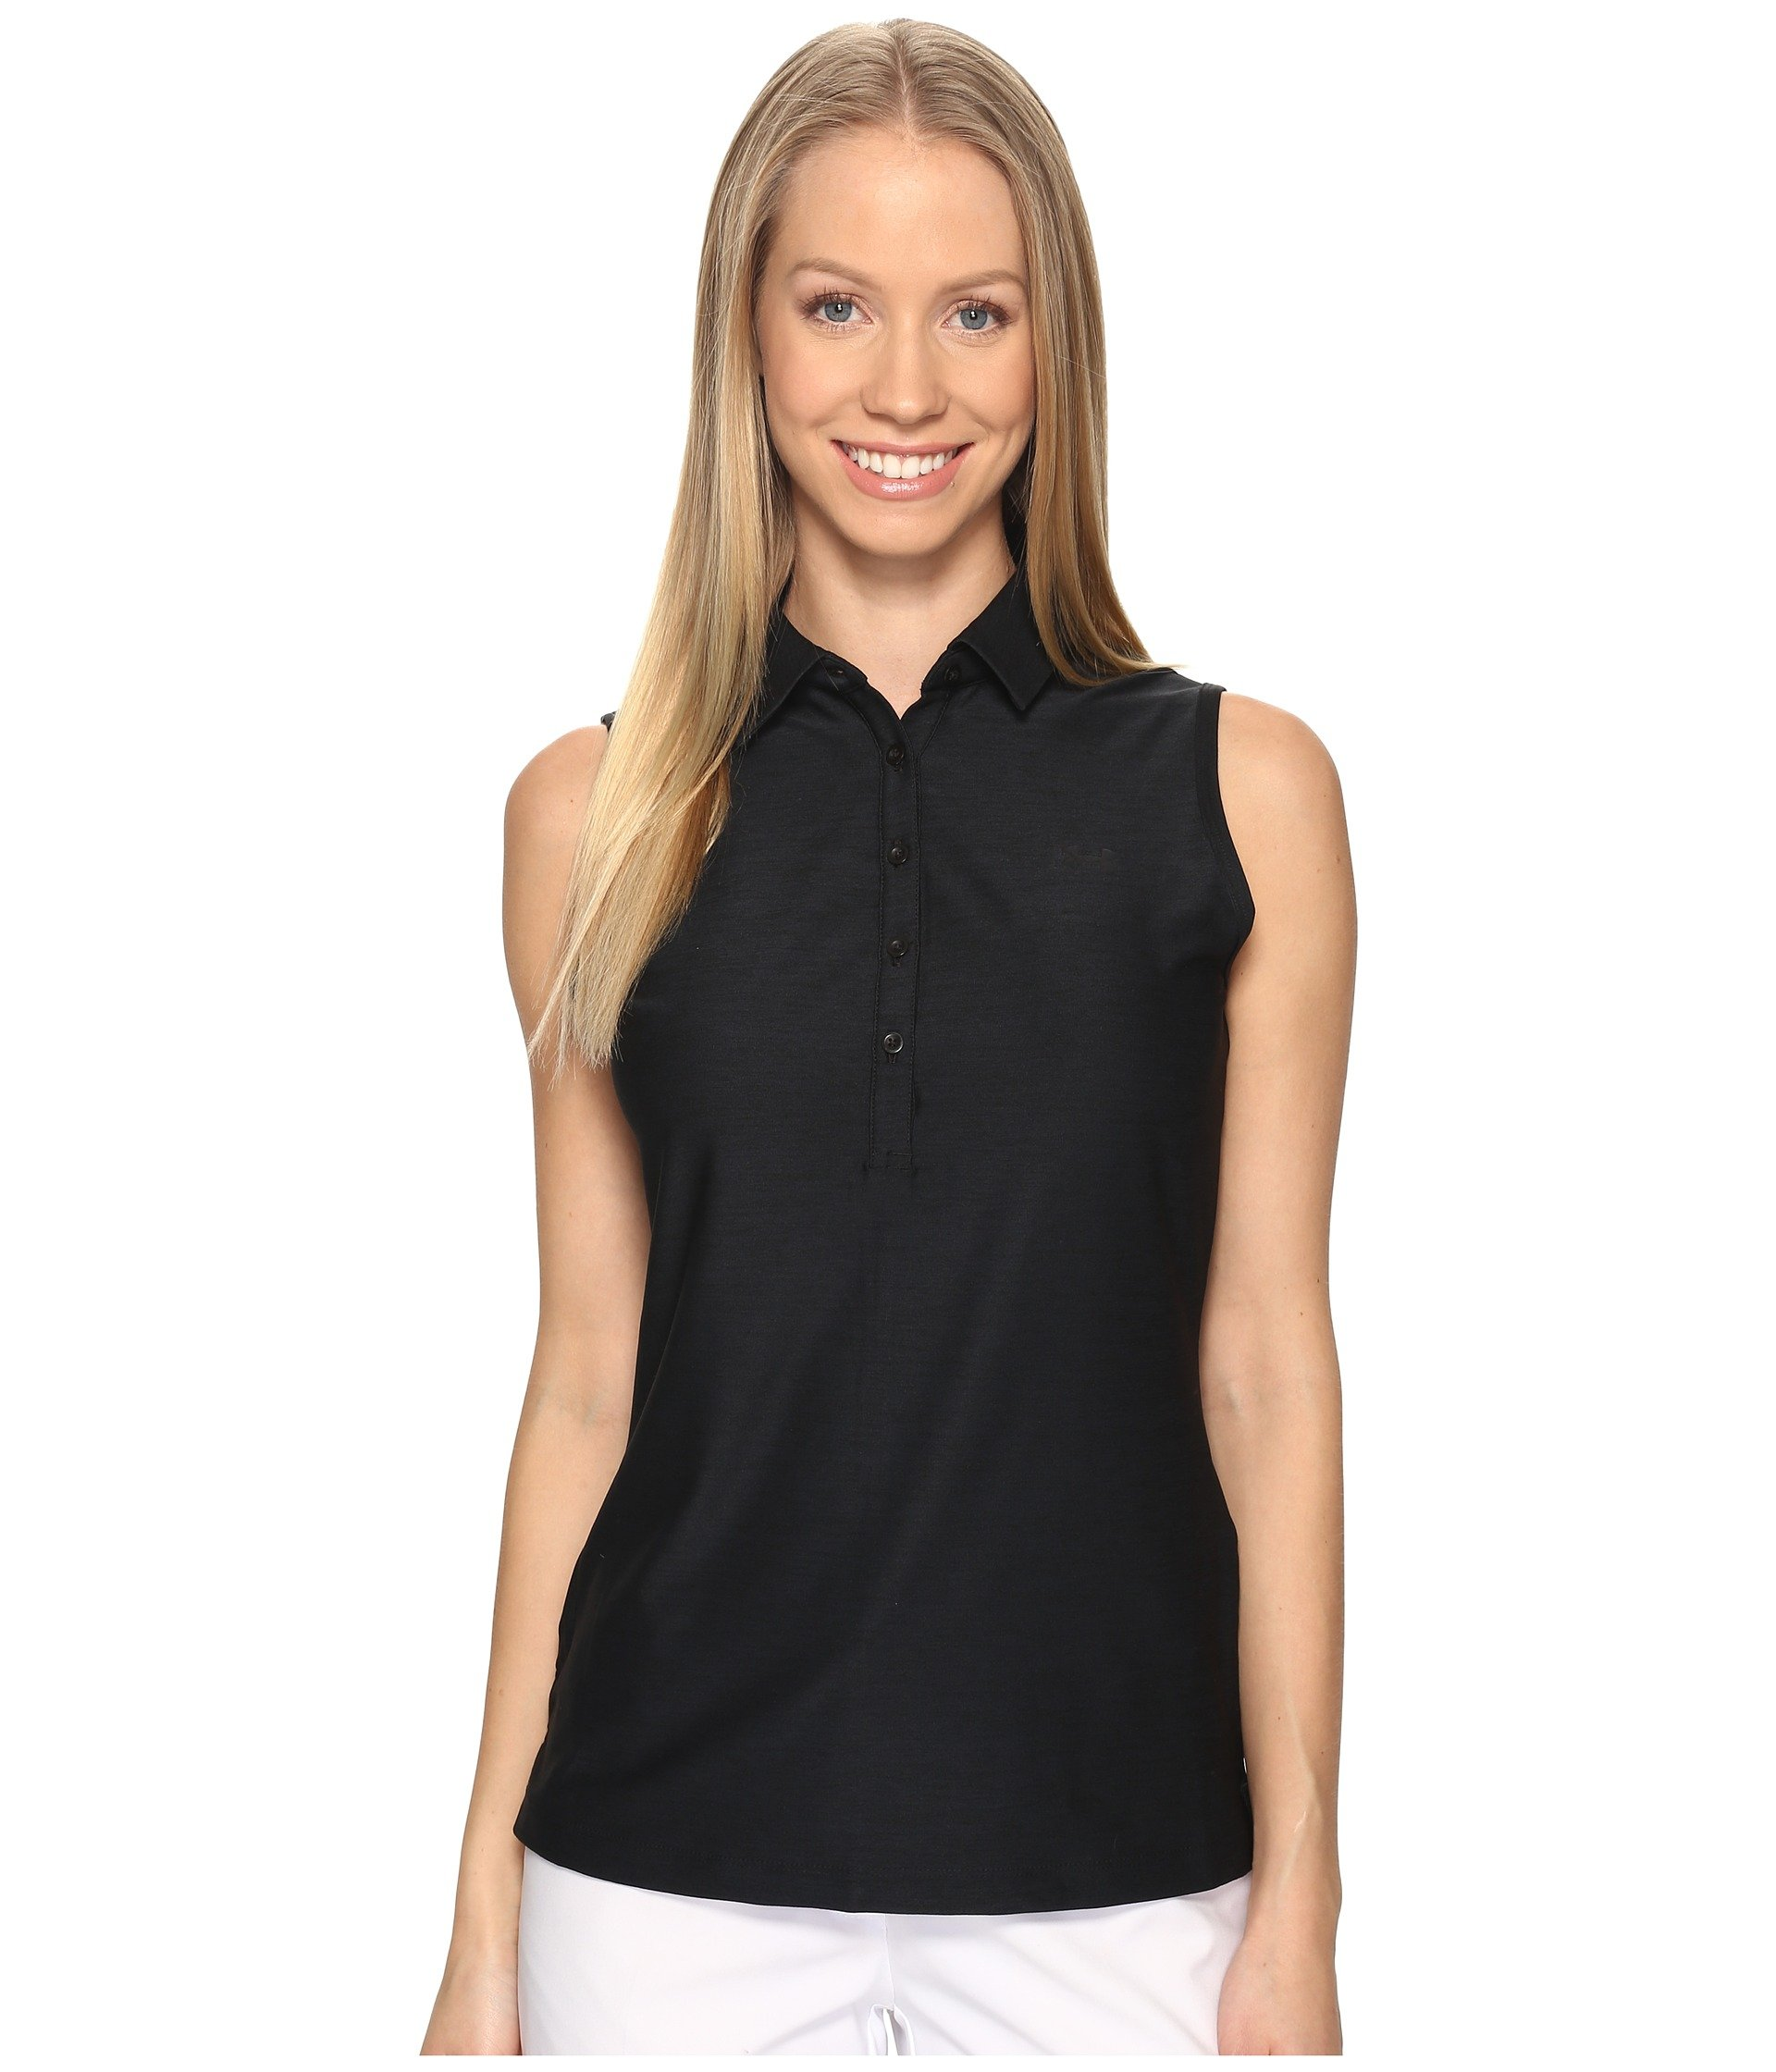 Camiseta Tipo Polo para Mujer Under Armour Golf Zinger Sleeveless Polo  + Under Armour en VeoyCompro.net